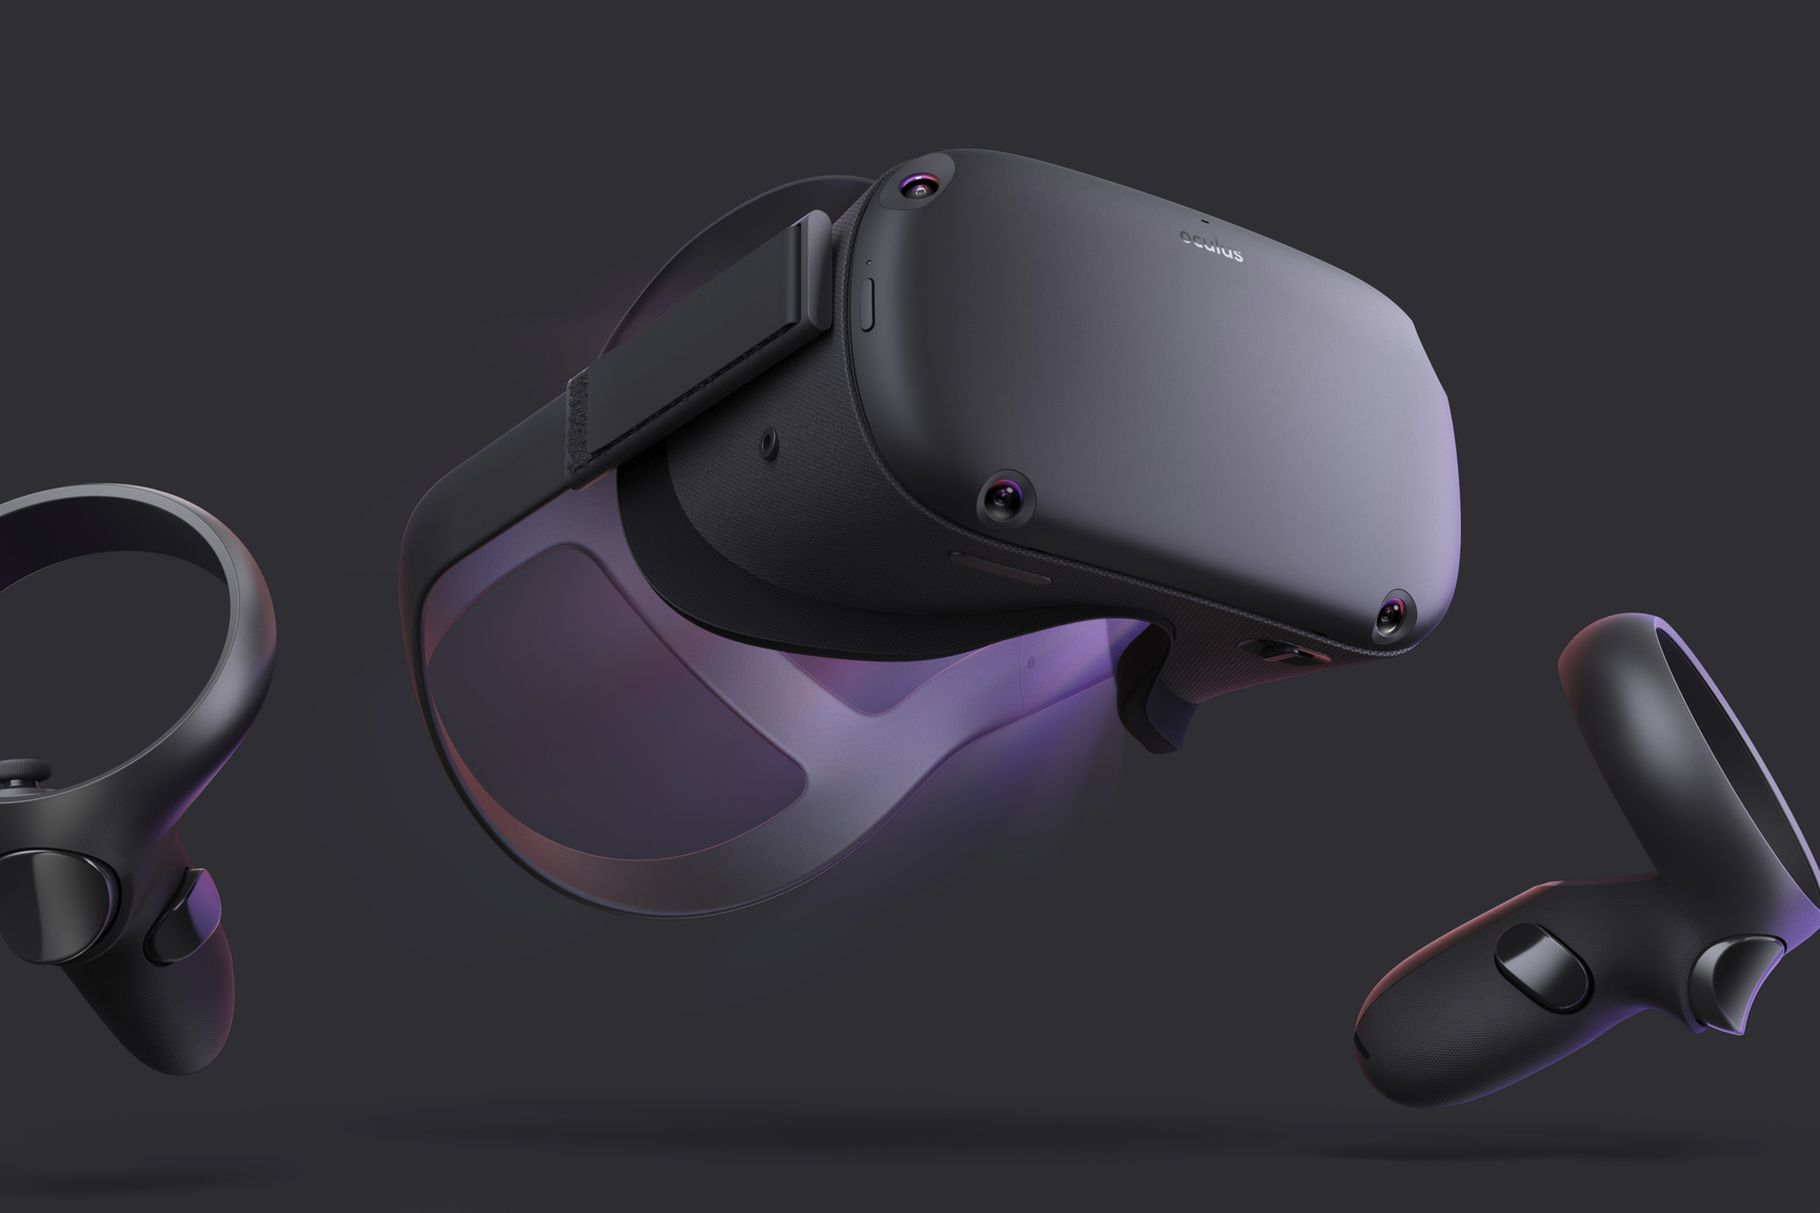 oculus-quest-vr-headset-1.0.0.jpg